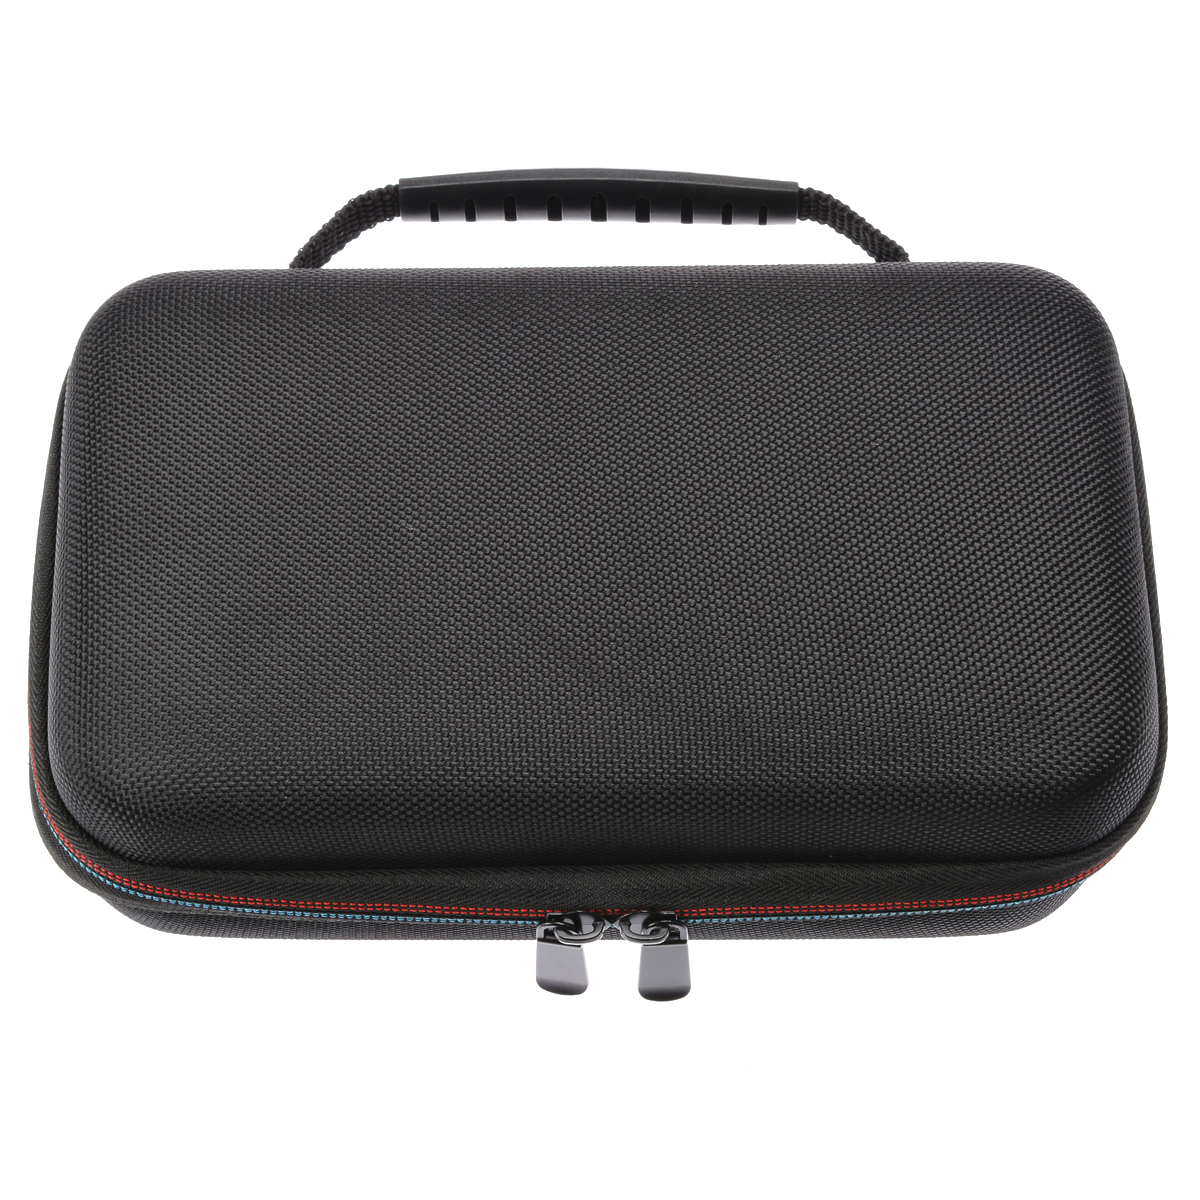 Multimeter Storage Bag Black Cloth Multipurpose Instrument Carry Case Bag Waterproof Case For F117C/ F17B Digital Multimeter